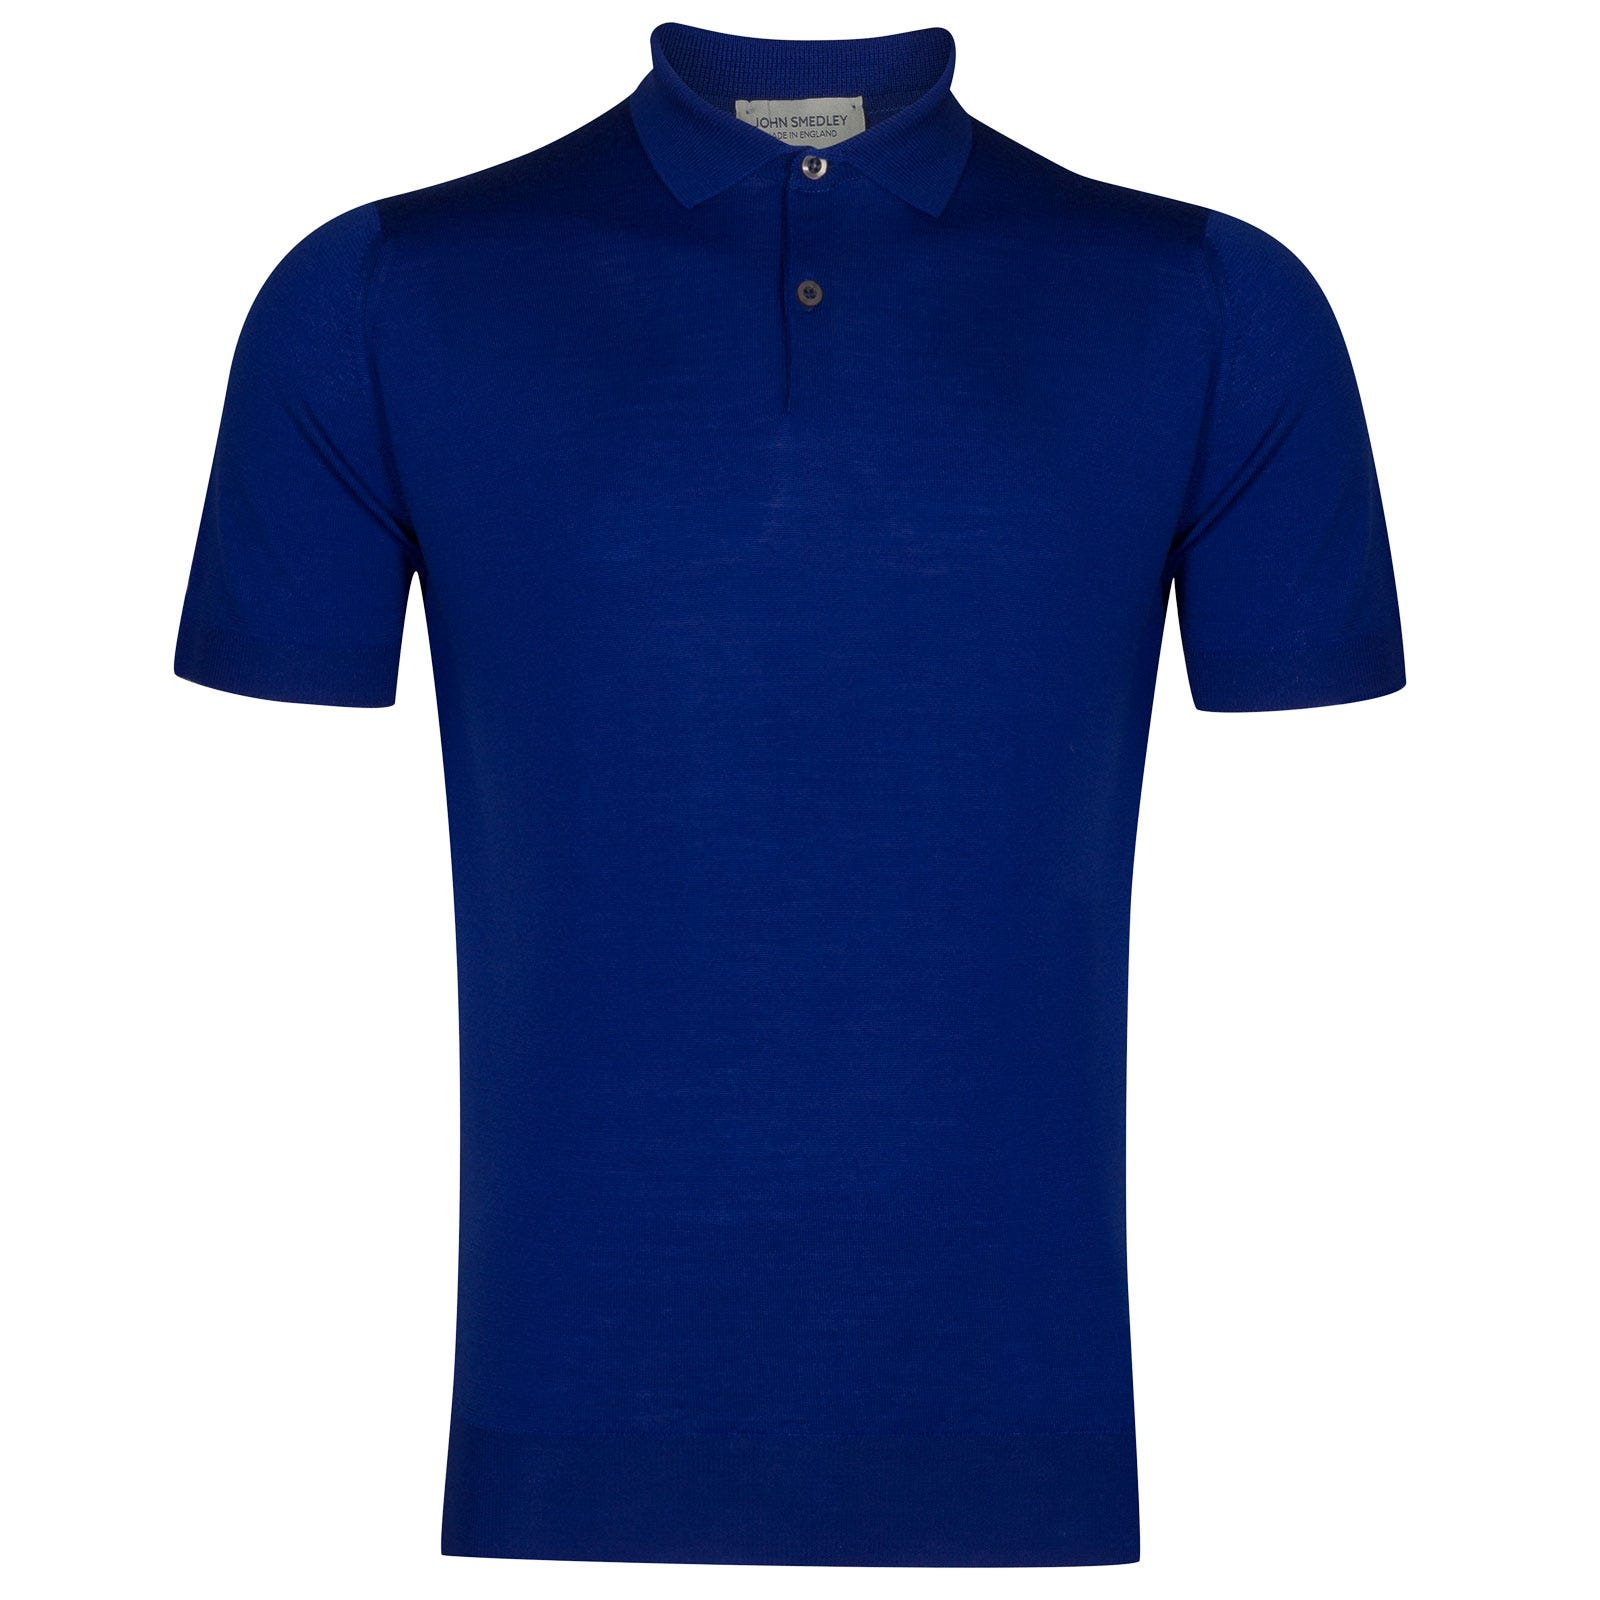 John Smedley payton Merino Wool Shirt in Coniston Blue-M